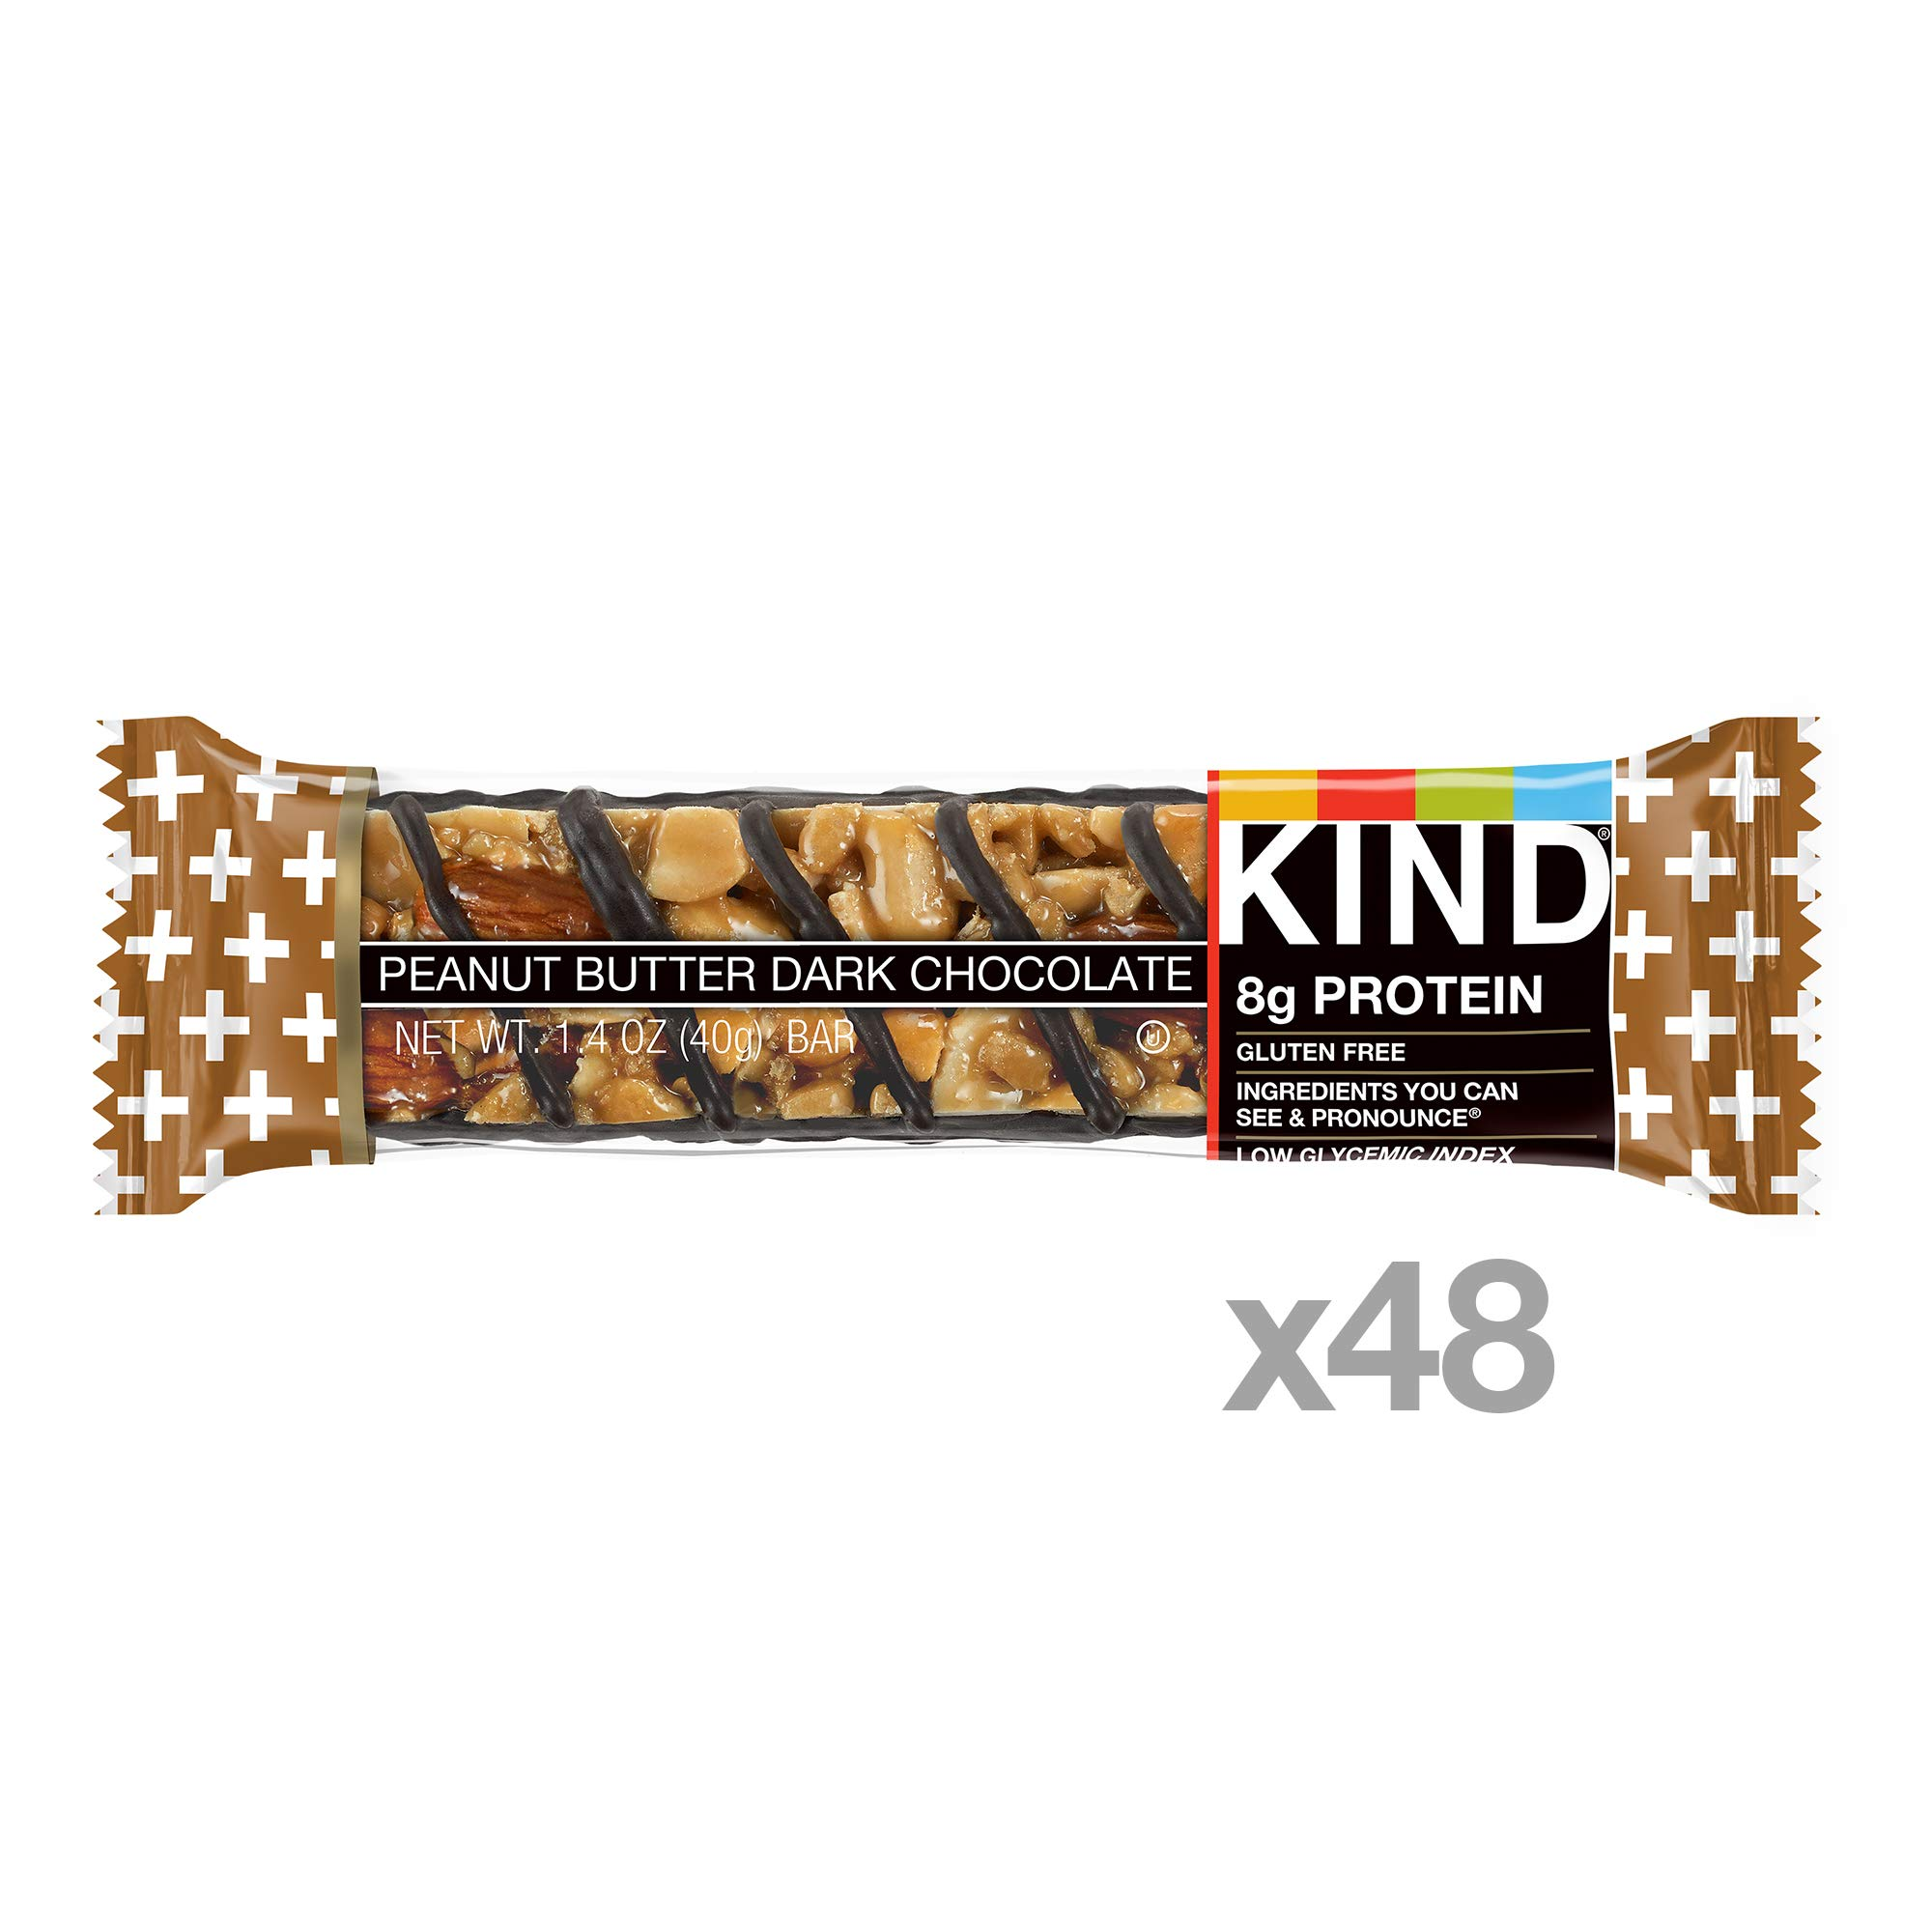 KIND Bars, Peanut Butter Dark Chocolate, 8g Protein, Gluten Free, 1.4 oz Bars, 48 Count by KIND (Image #2)